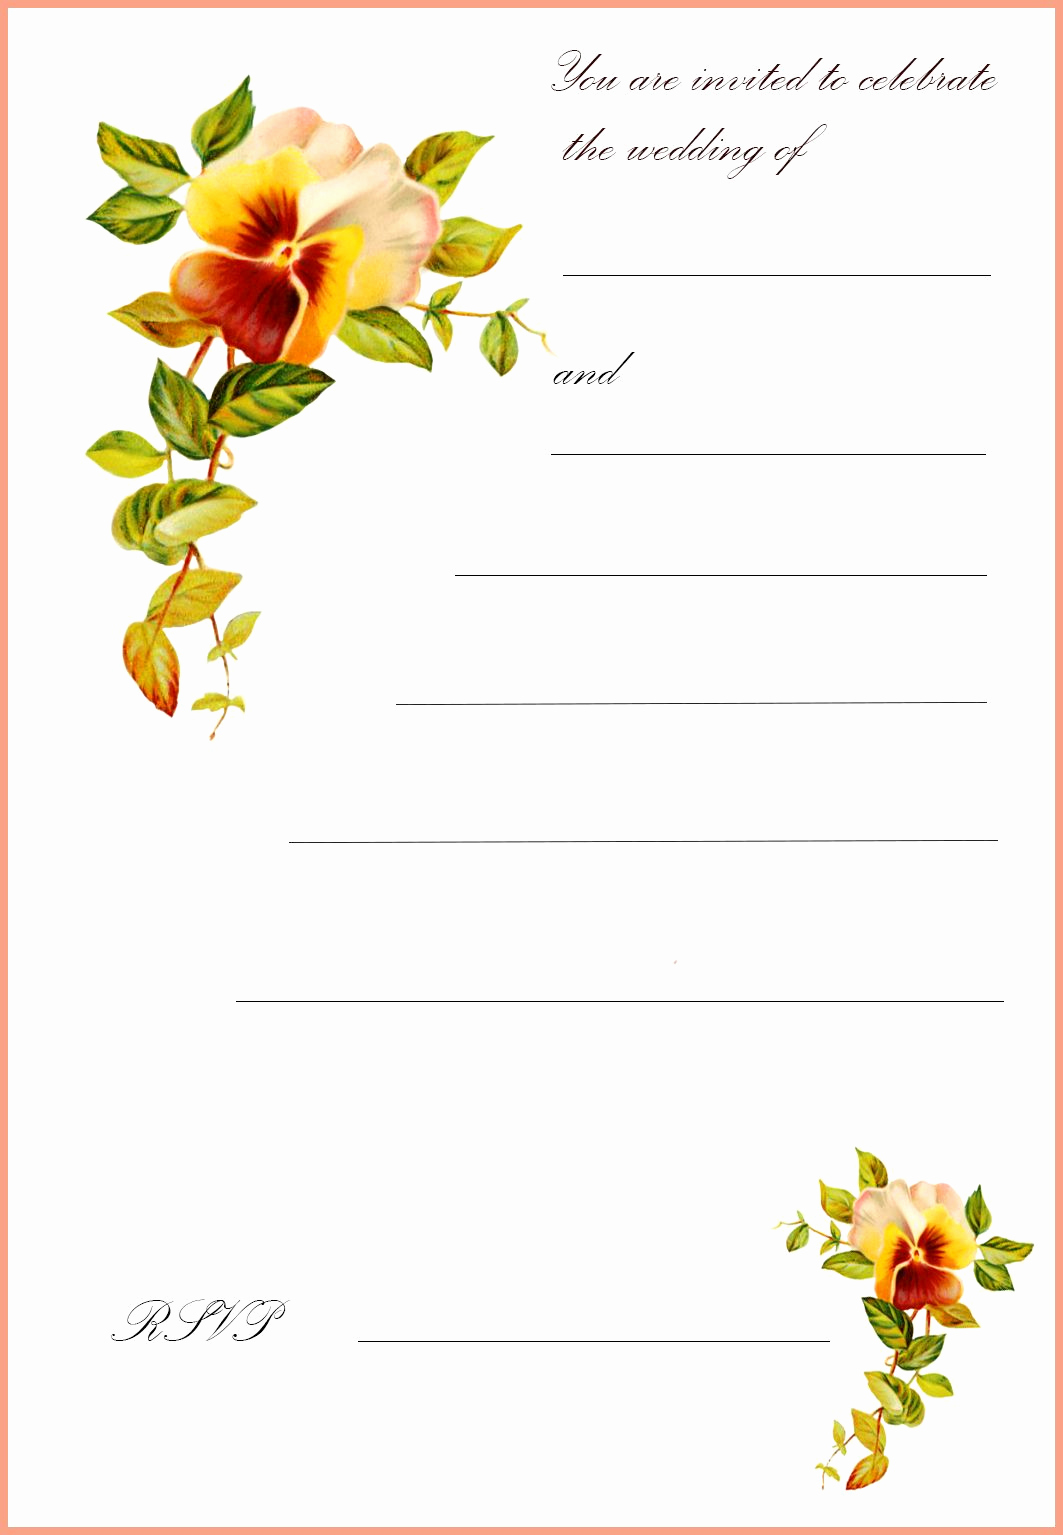 Free Greeting Card Templates Lovely Free Printable Wedding Clip Art